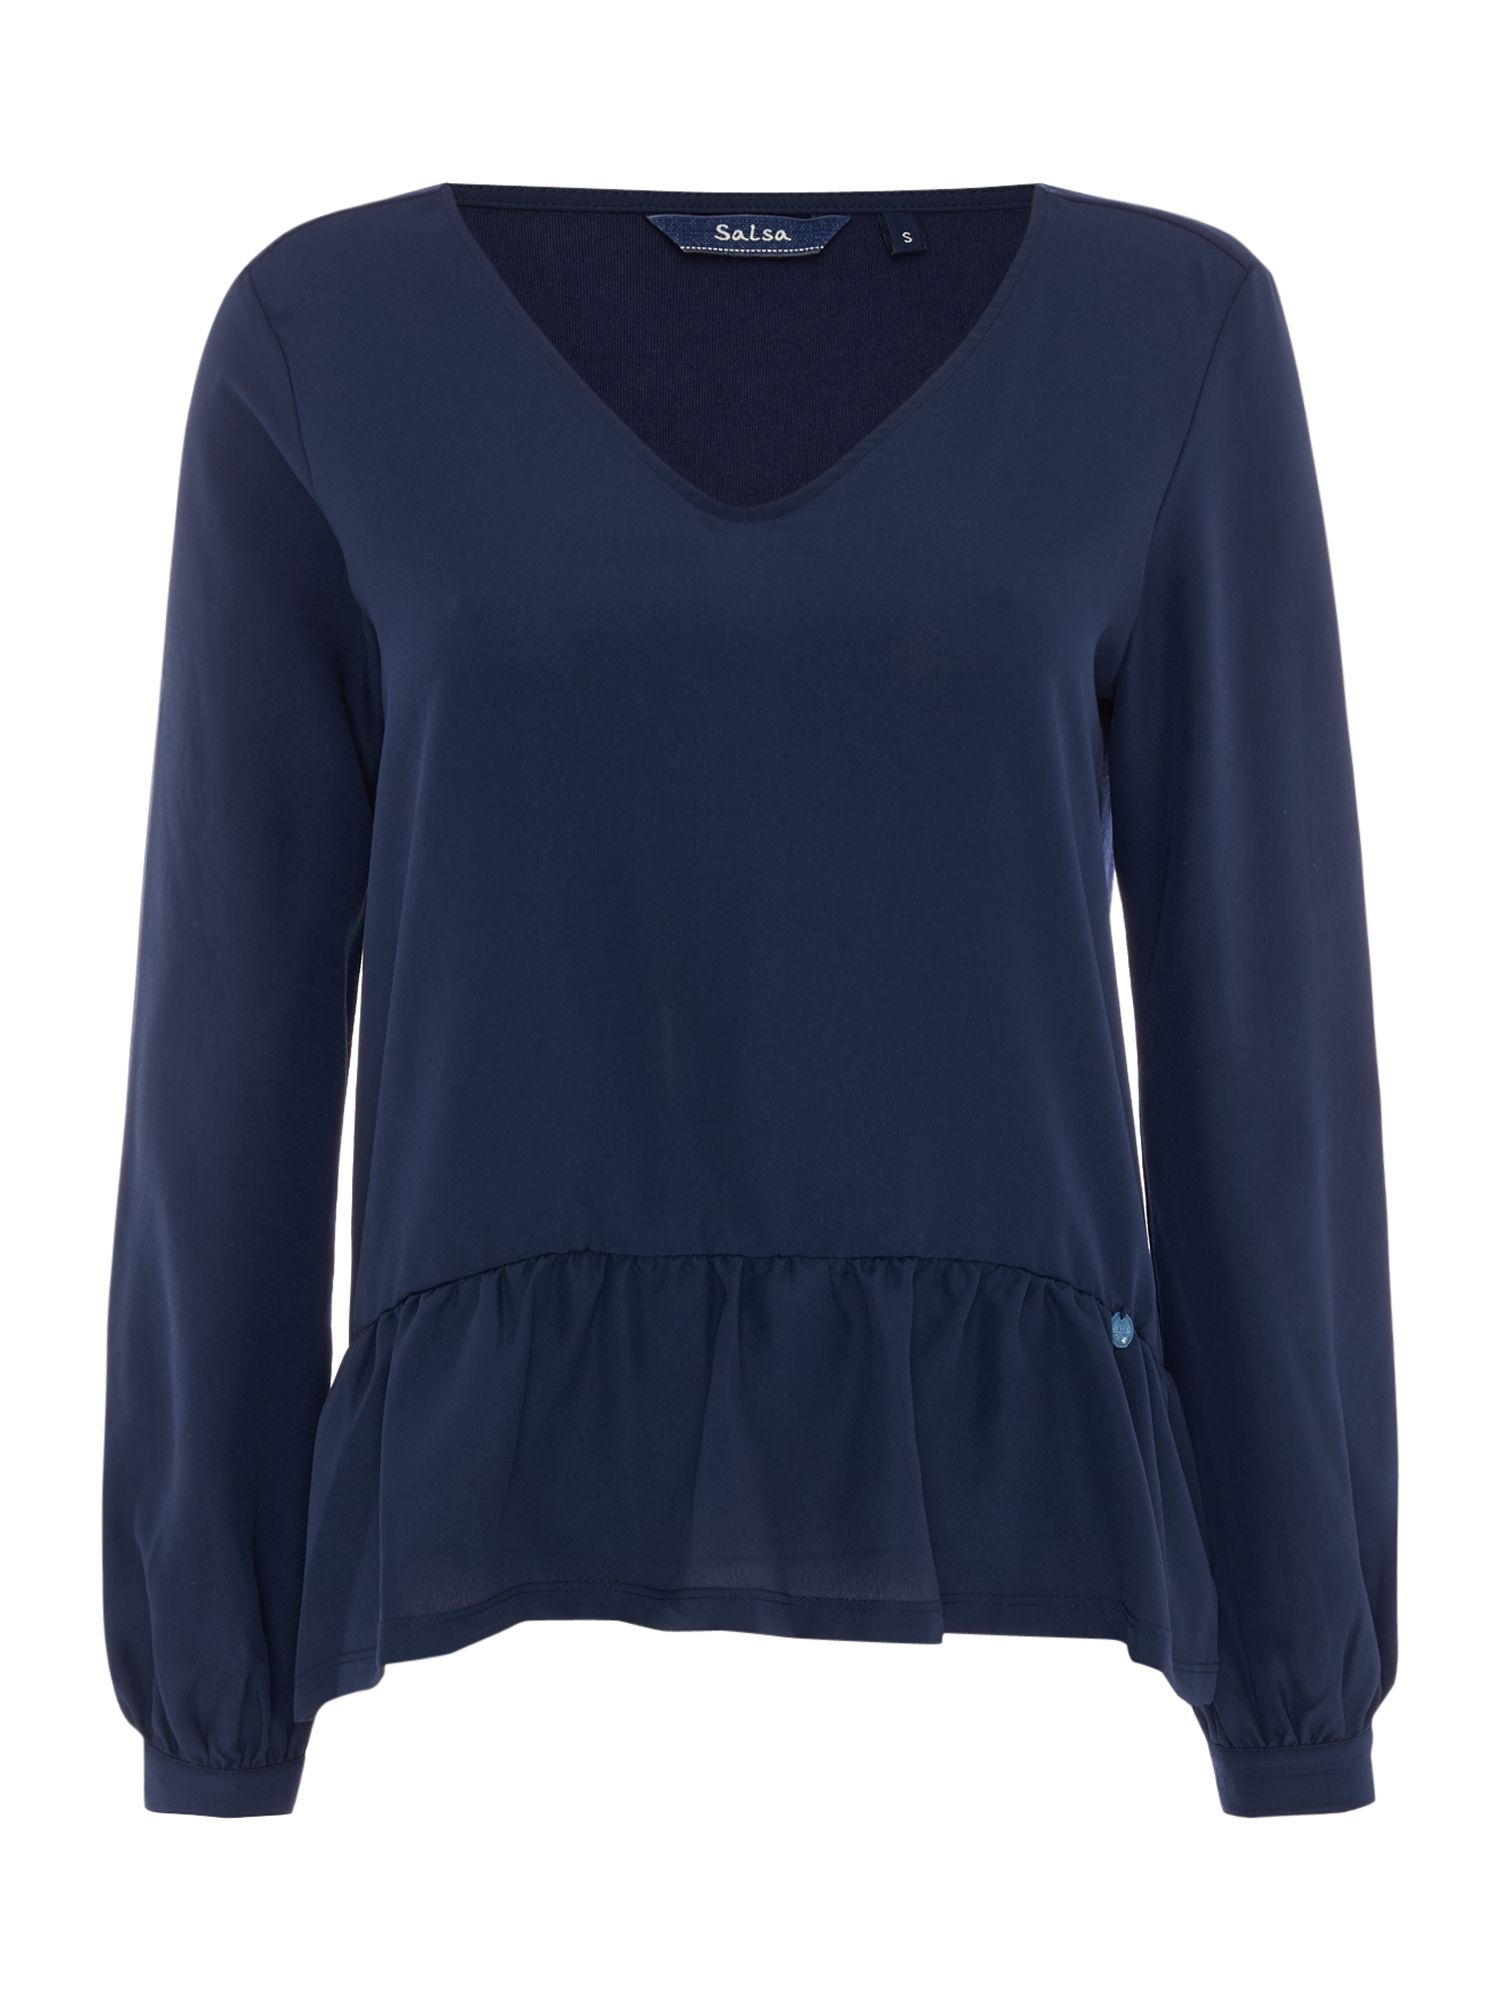 Salsa Long Sleeve V-Neck Top With Ruffle Detail, Blue